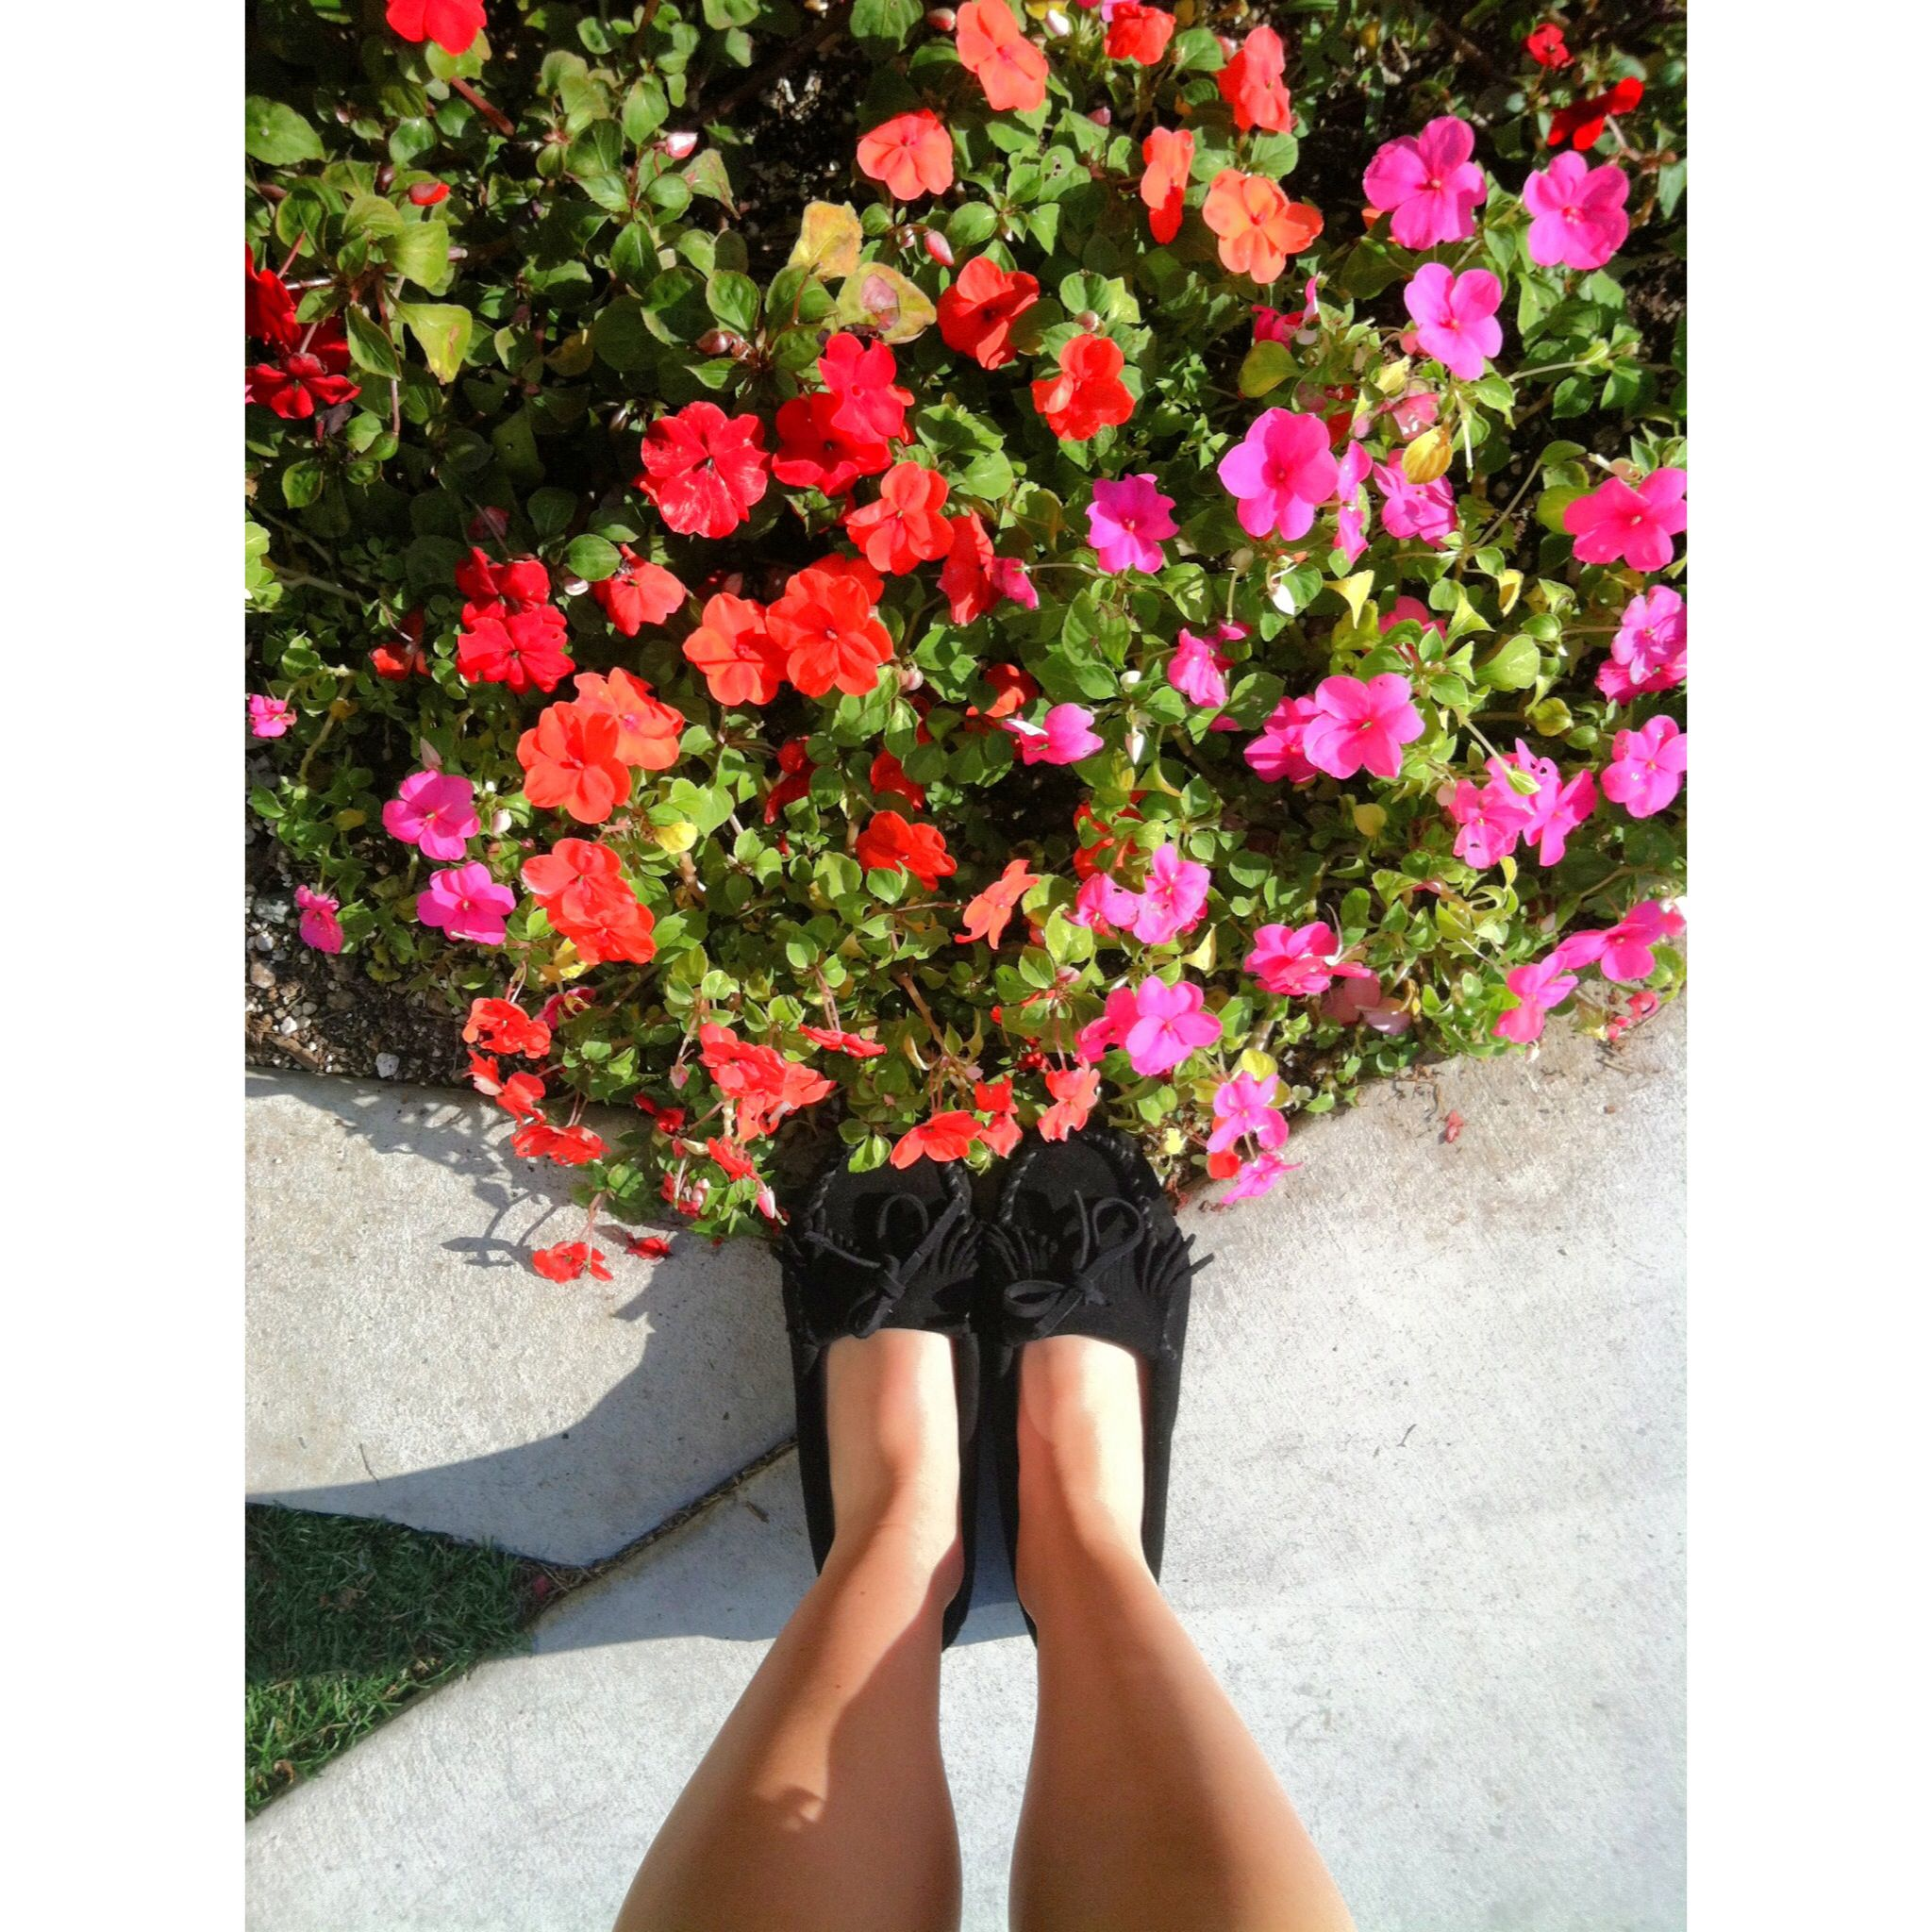 These #black #minnetonka #moccasins are now available at @Pangaea Outpost in #pacificbeach! @Minnetonka Moccasin #minnetonkamoccasins #shoes #dragonflycali #pangaeaoutpost